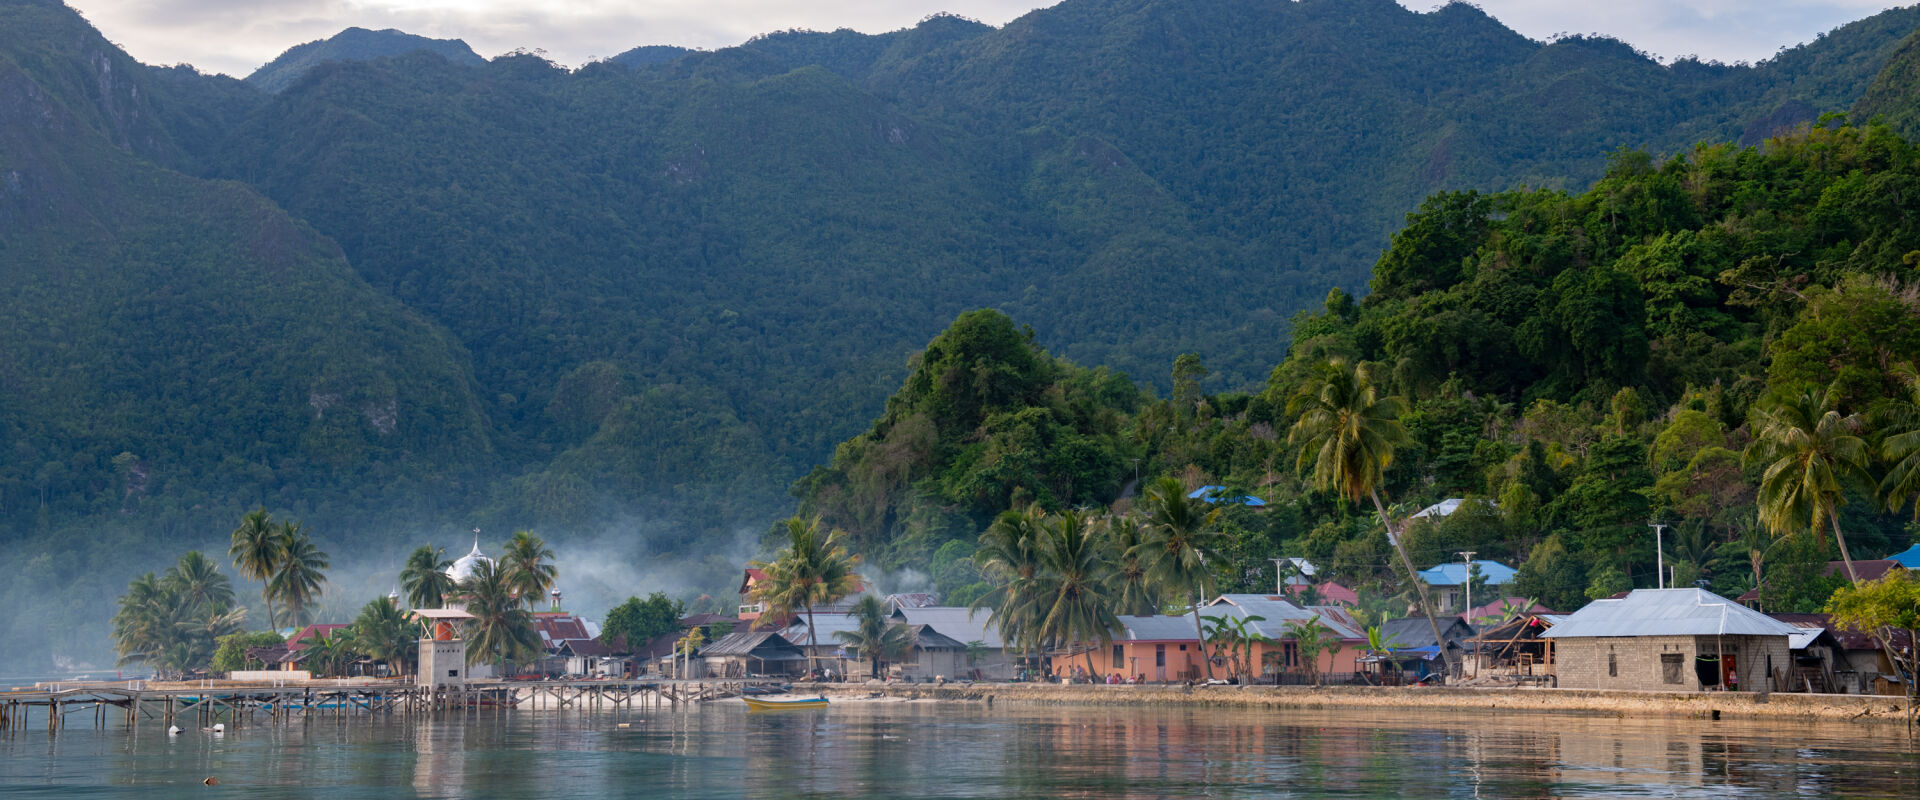 Moluccas, Indonesia Holidays with Selective Asia